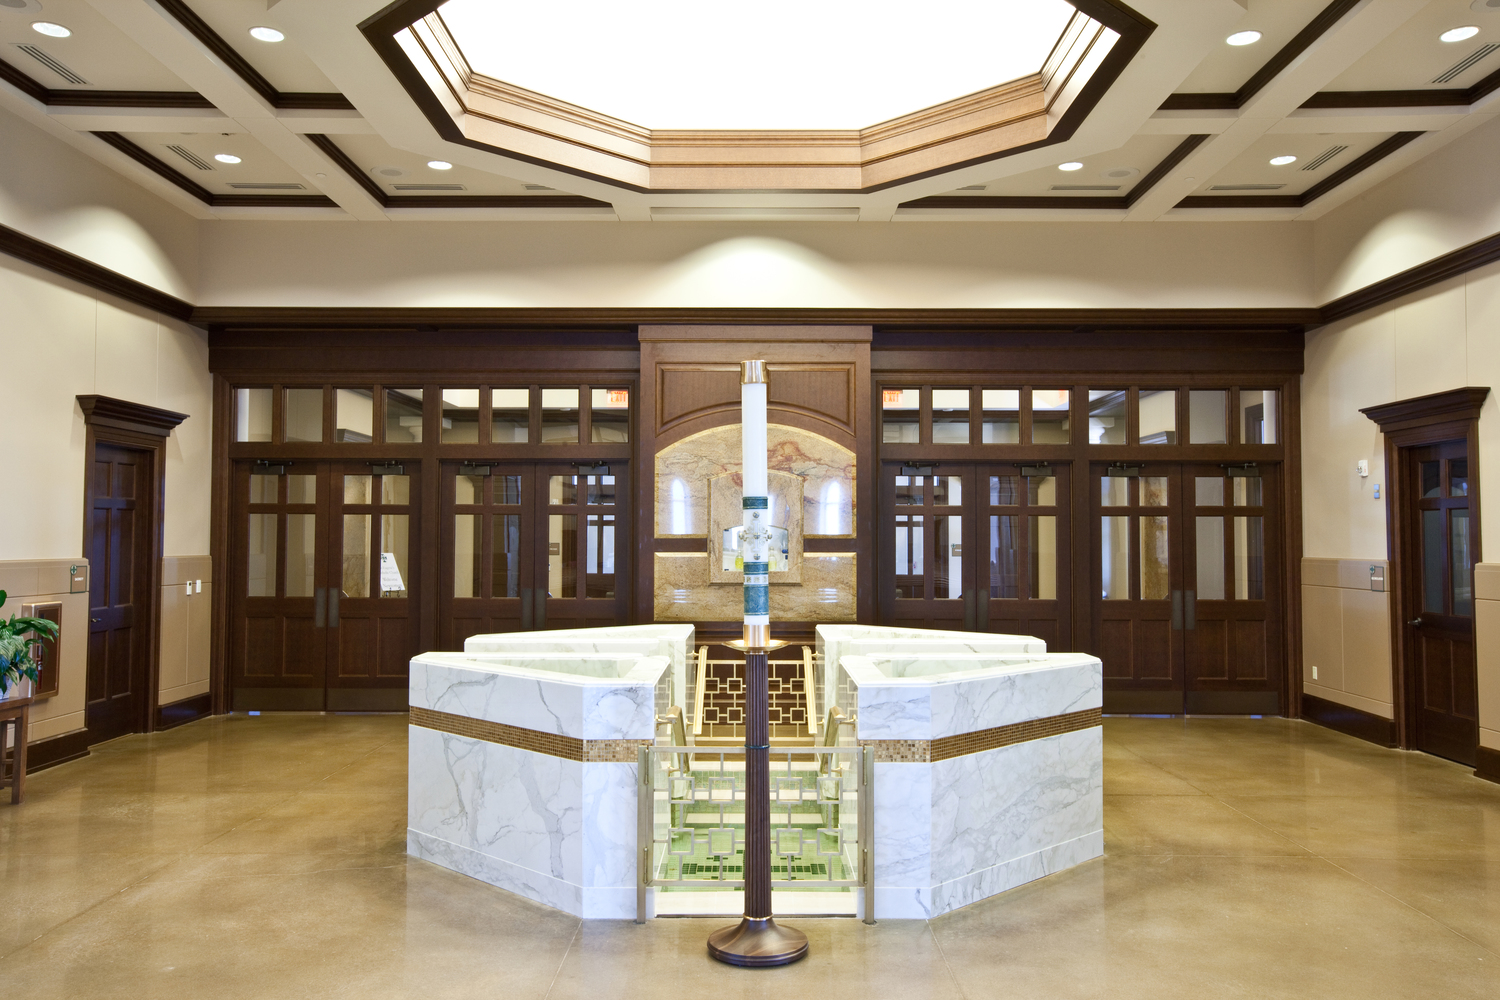 Octagonal Baptismal Font with Four Triangular Upper Bowls with Spillways and Descending and Ascending Steps into a Cruciform Lower Pool, St. Eugene, Oklahoma City, OK.